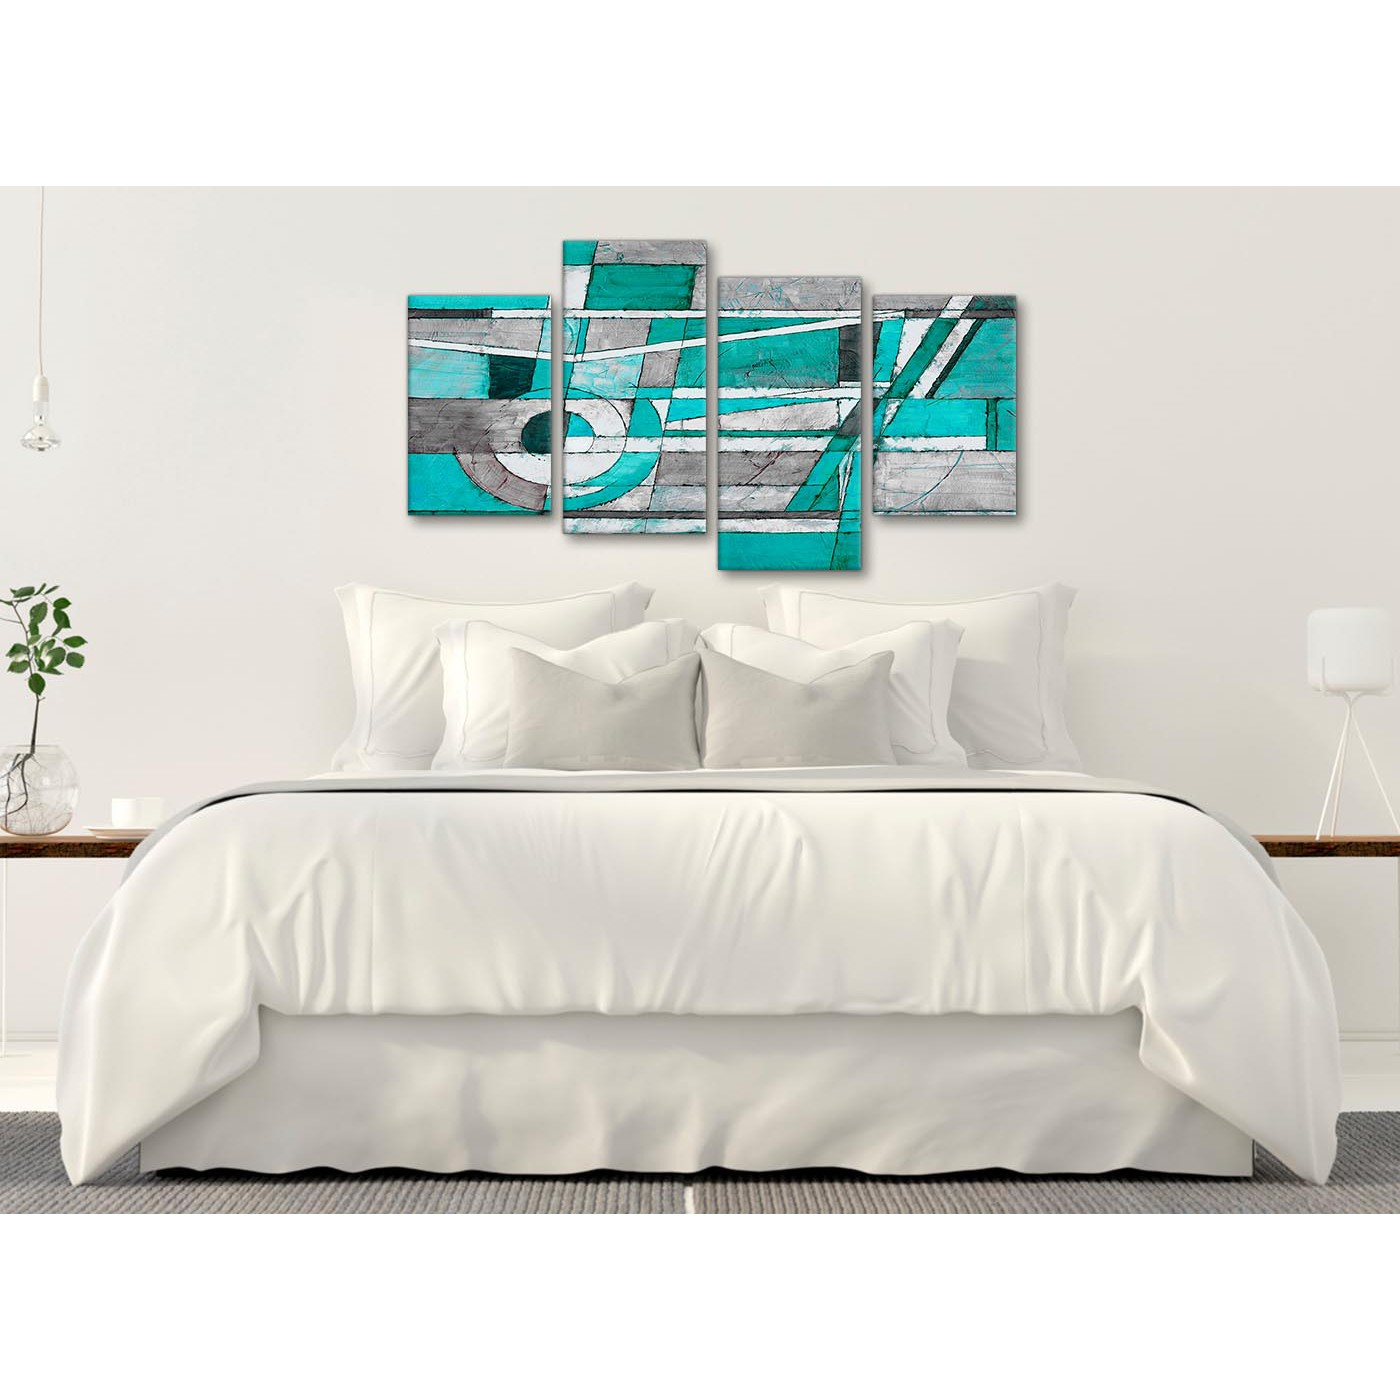 Bedroom Canvas Wall Art Uk: Large Turquoise Grey Painting Abstract Bedroom Canvas Wall